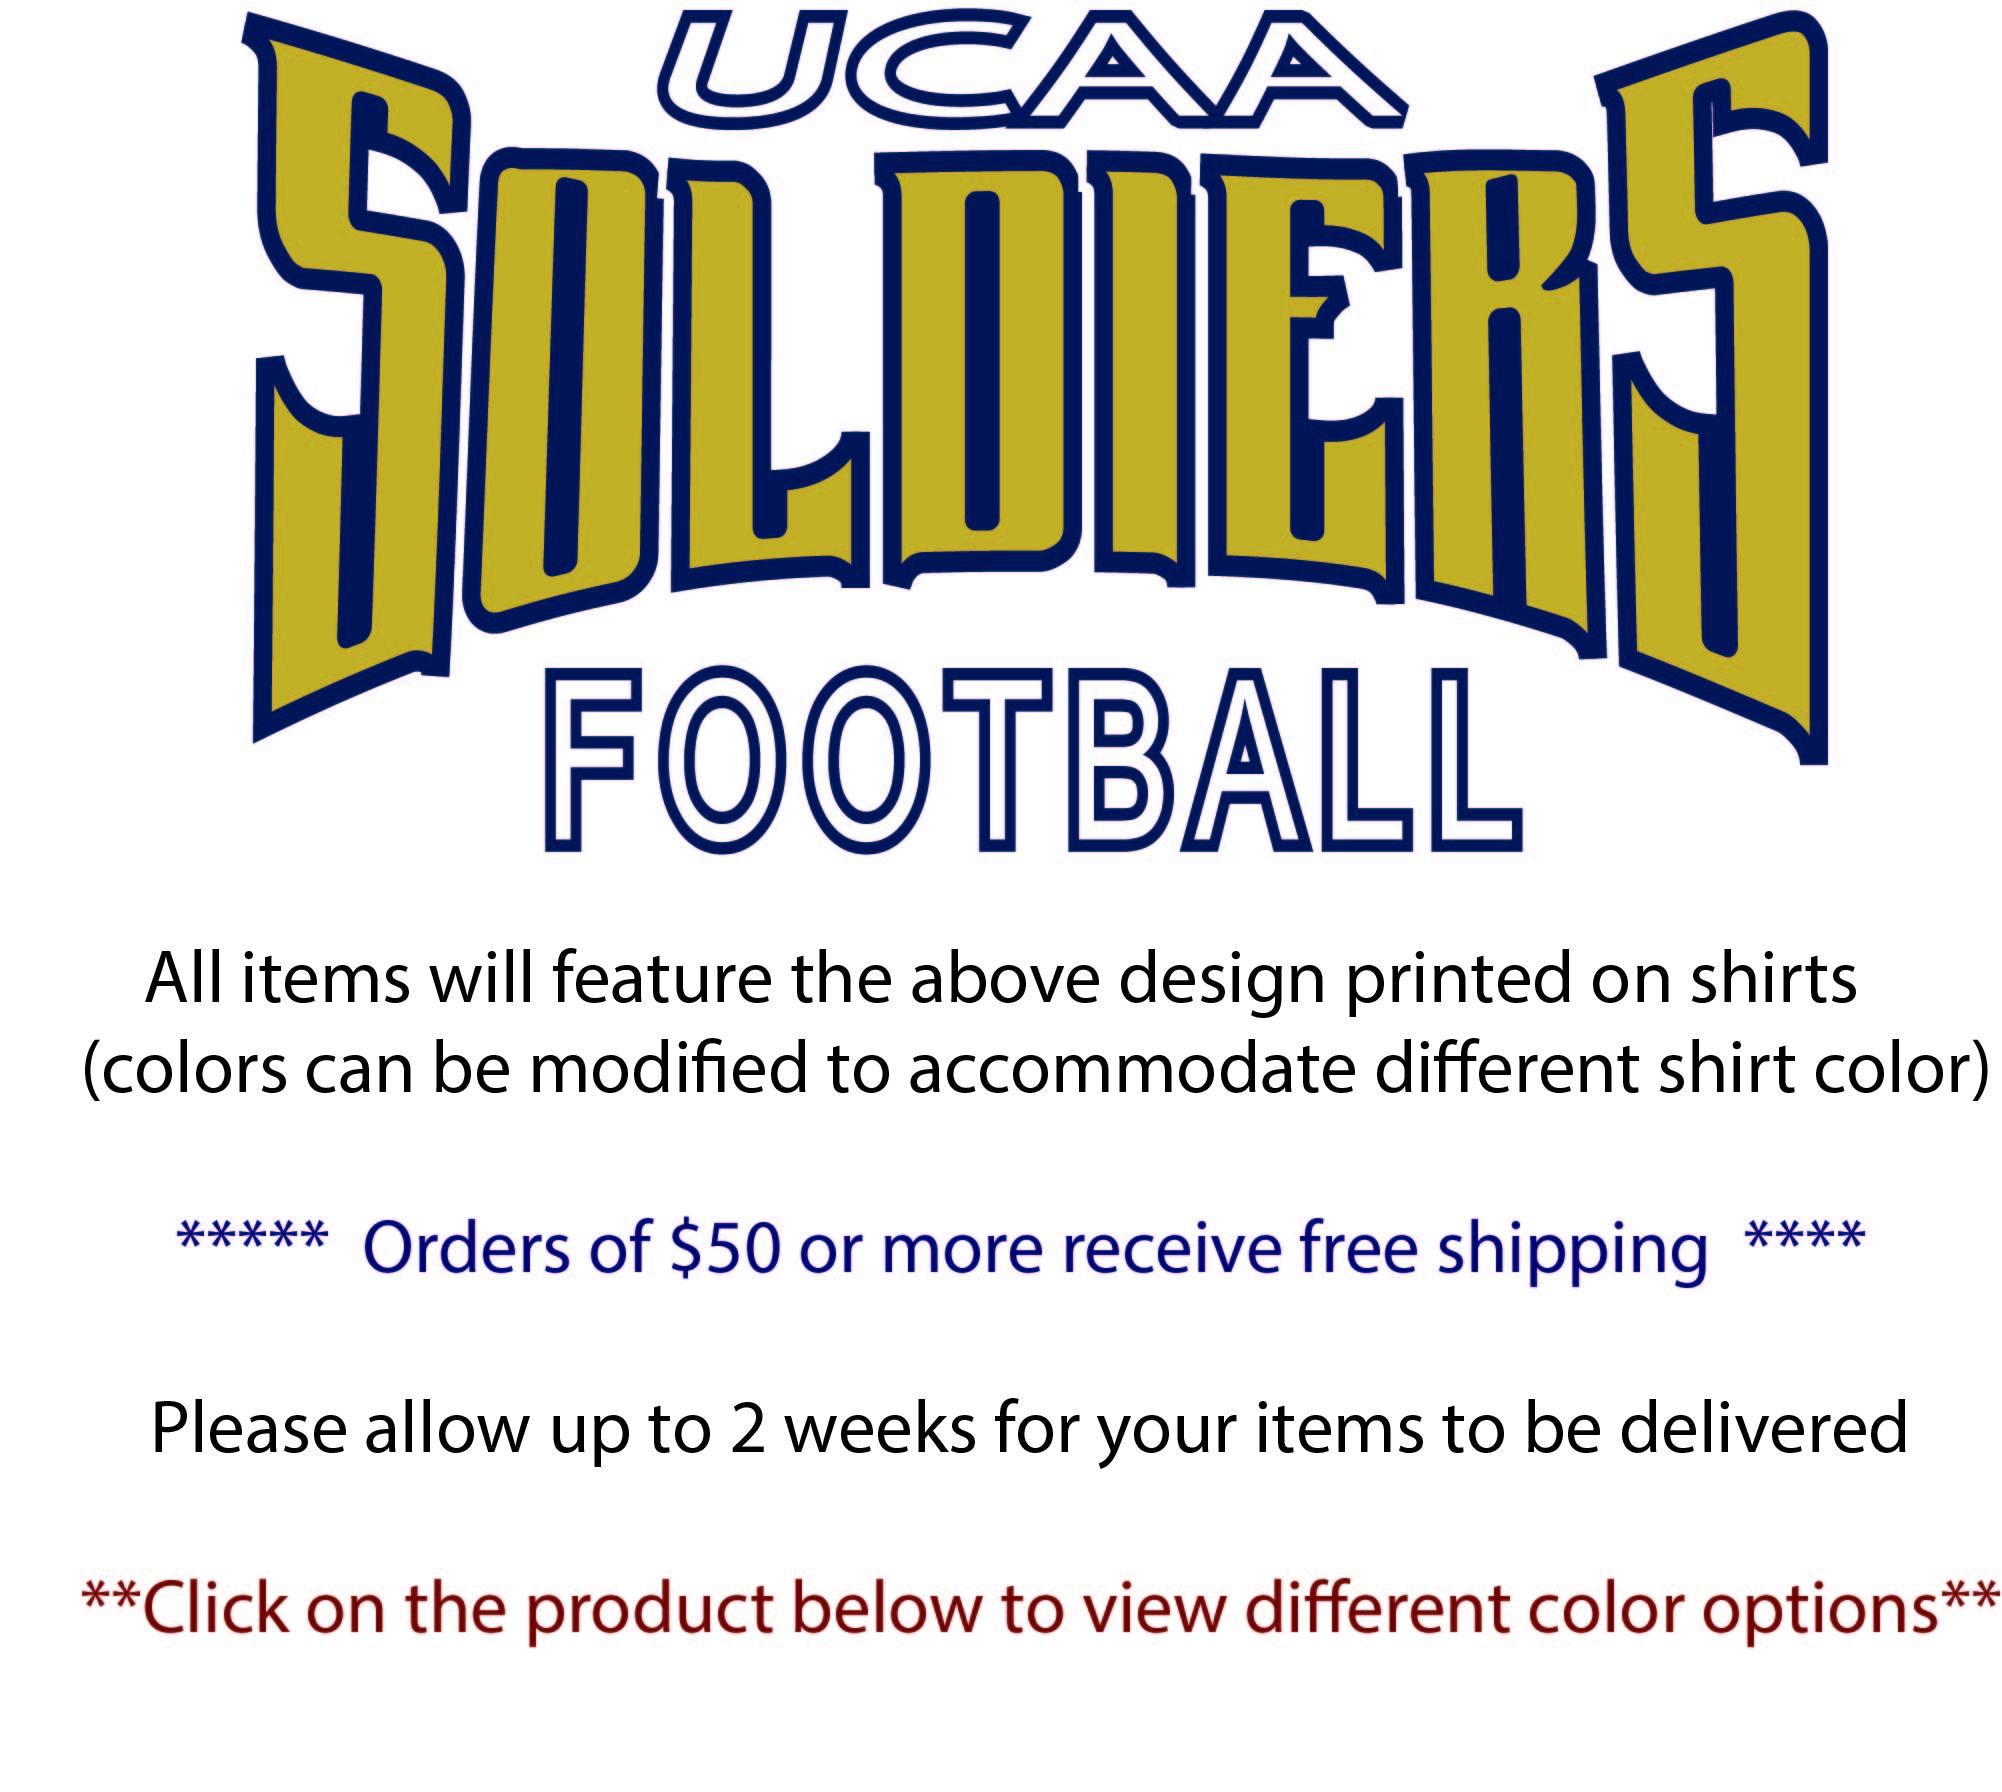 ucaa-football-soldiers-web-site-header.jpg